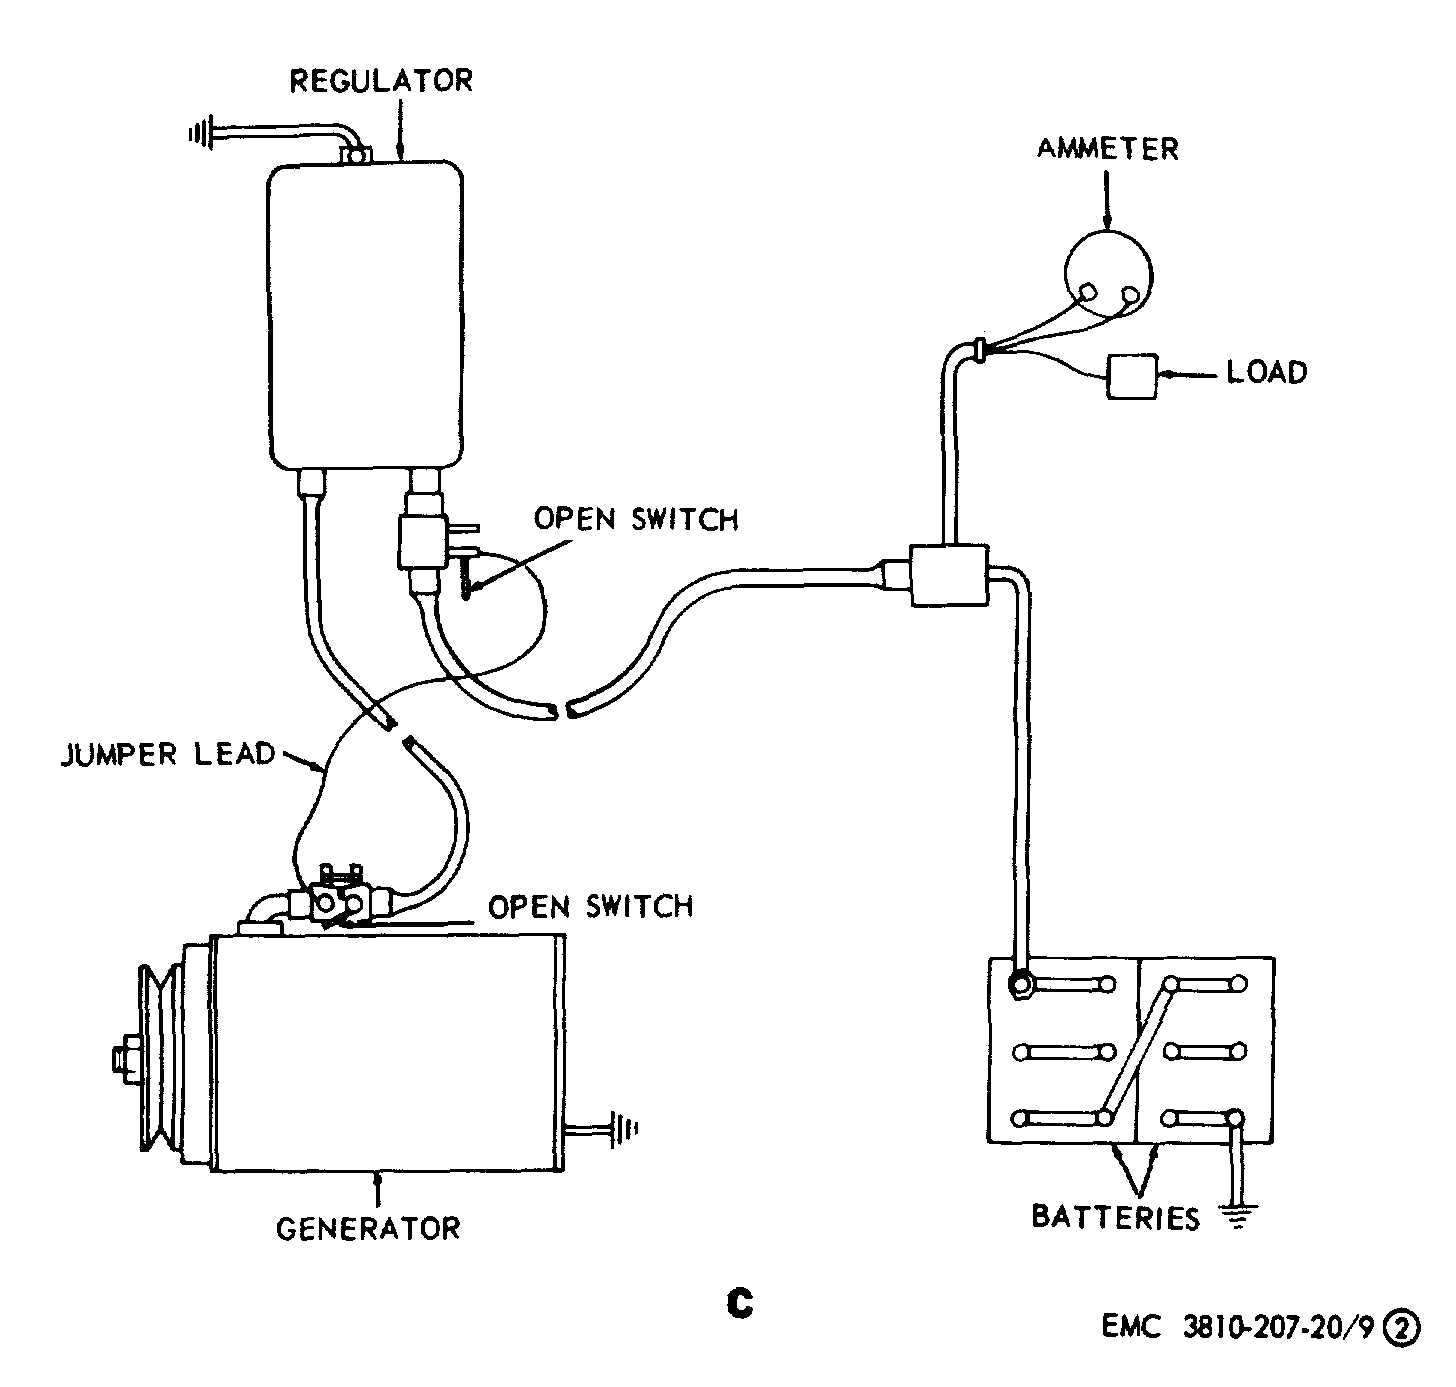 Wiring Diagram For Alternator With External Regulator